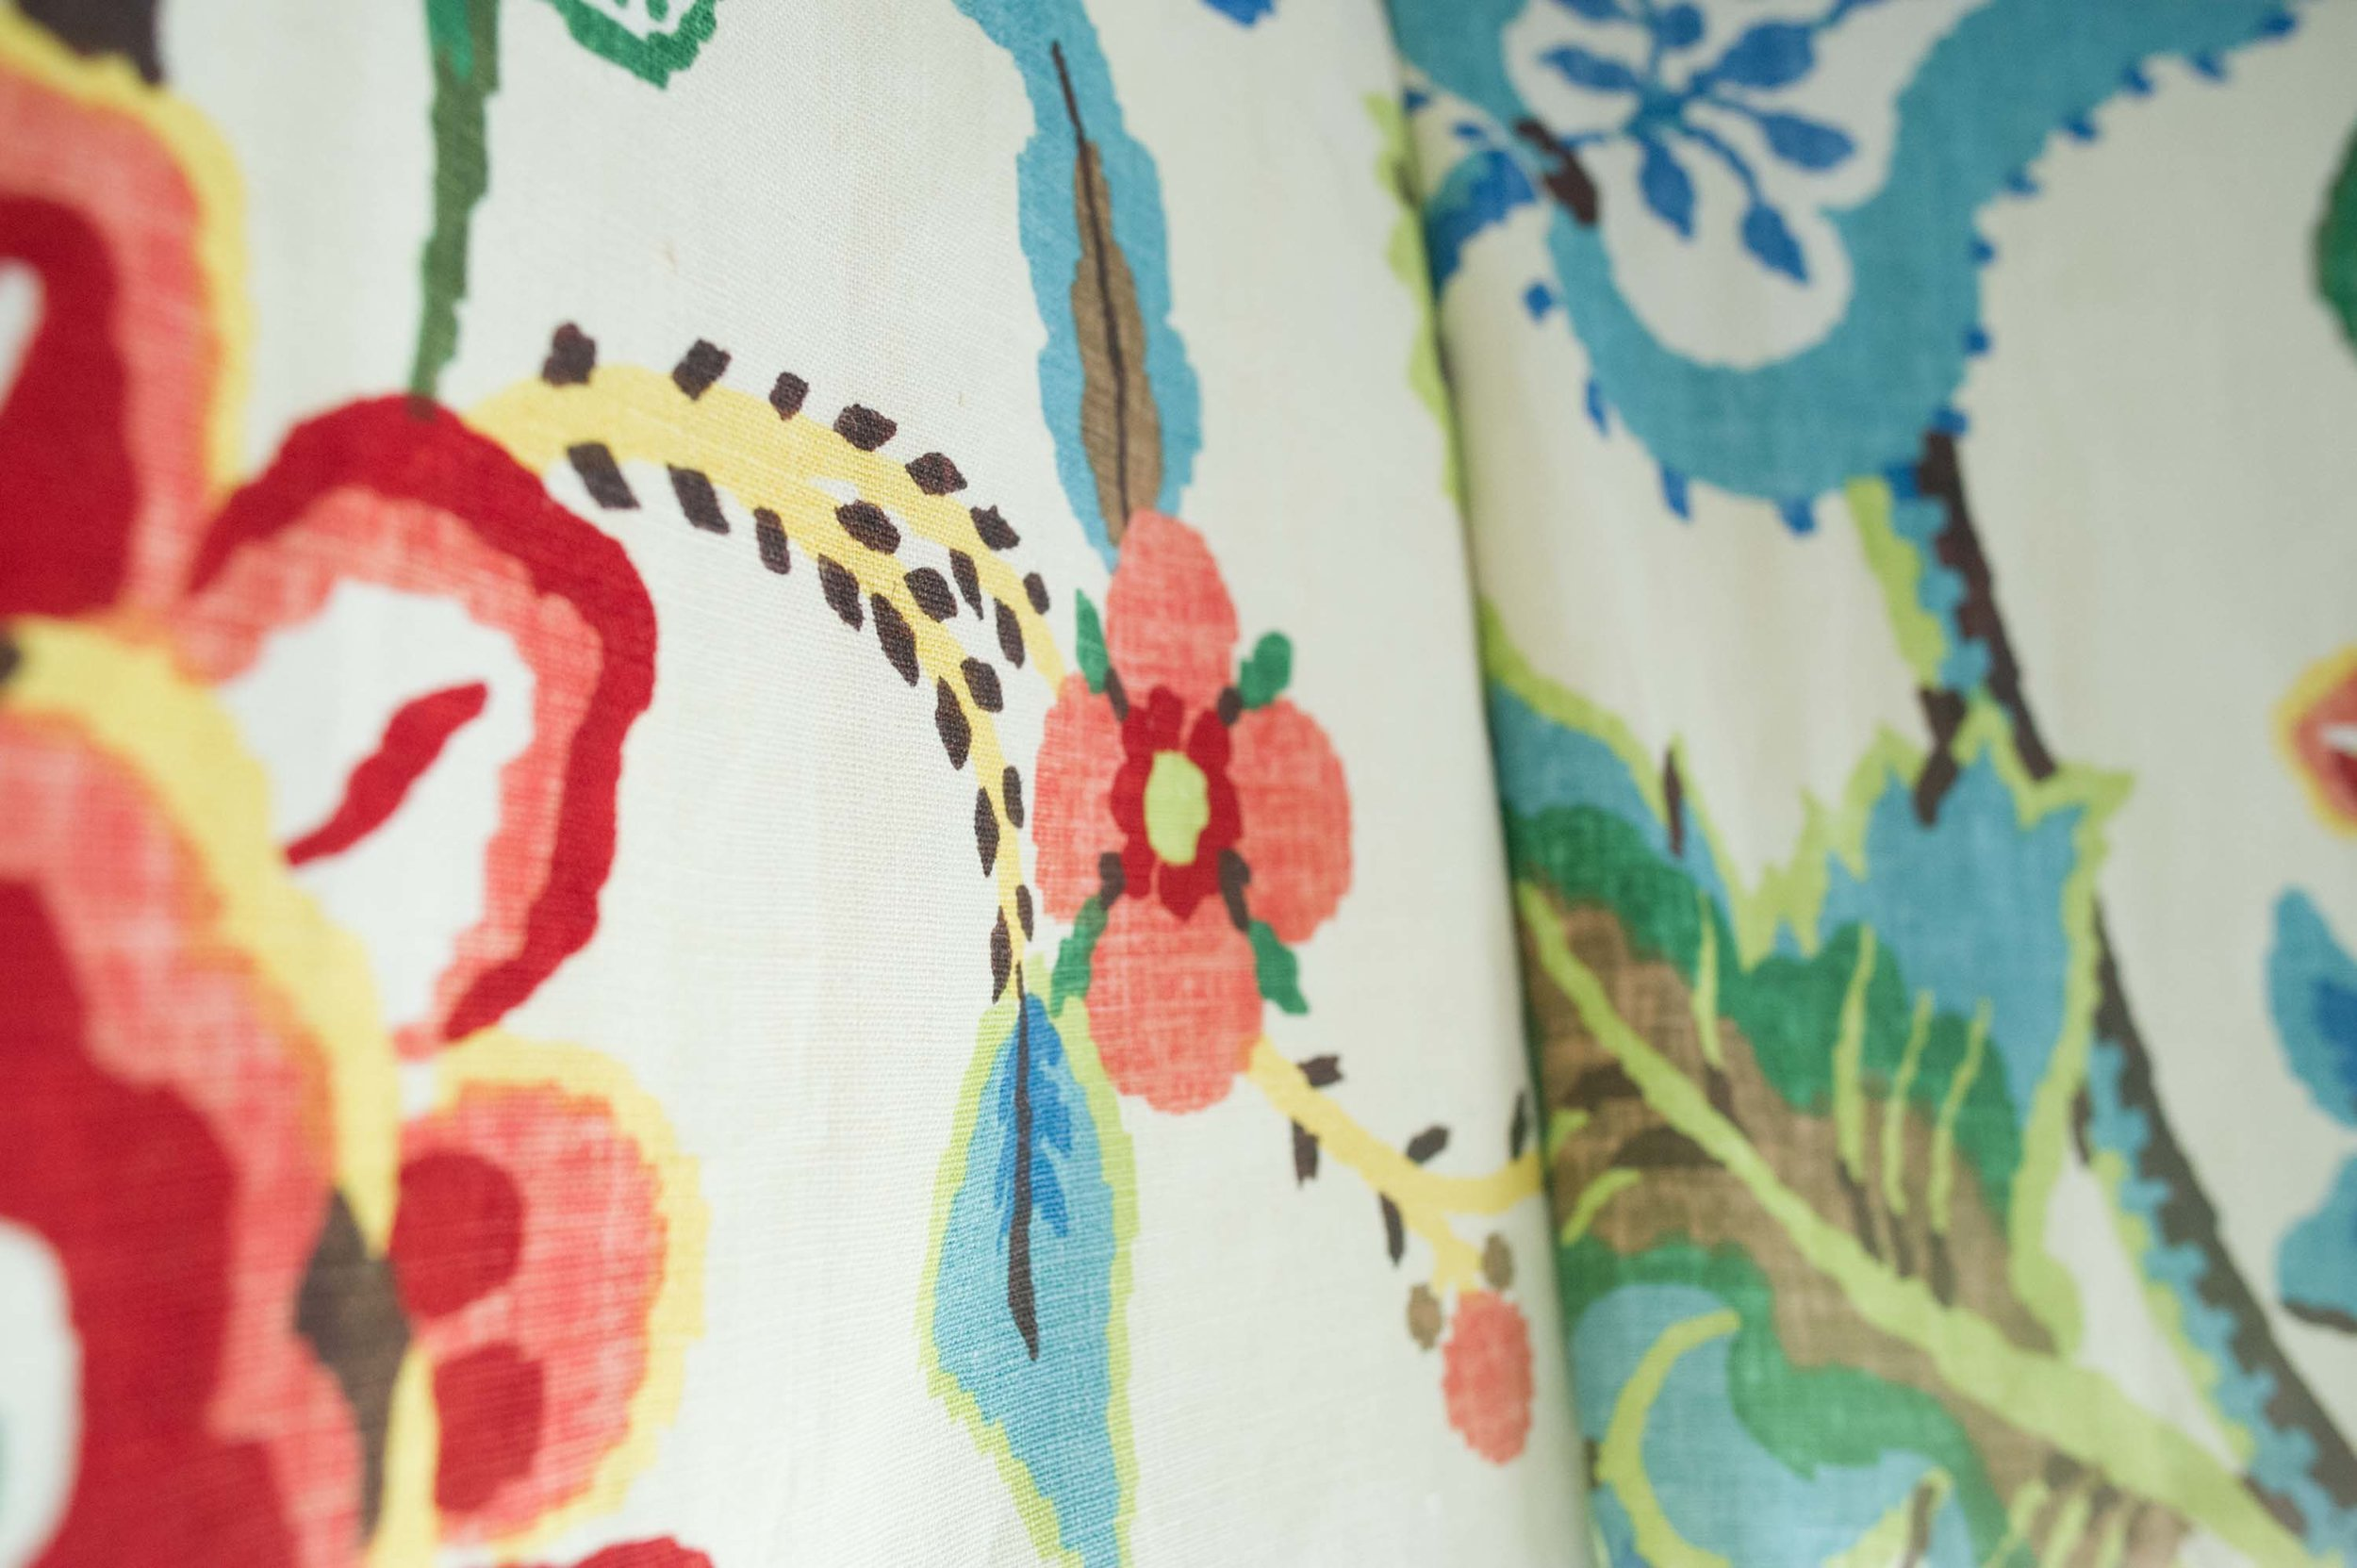 Fabric with floral printed design